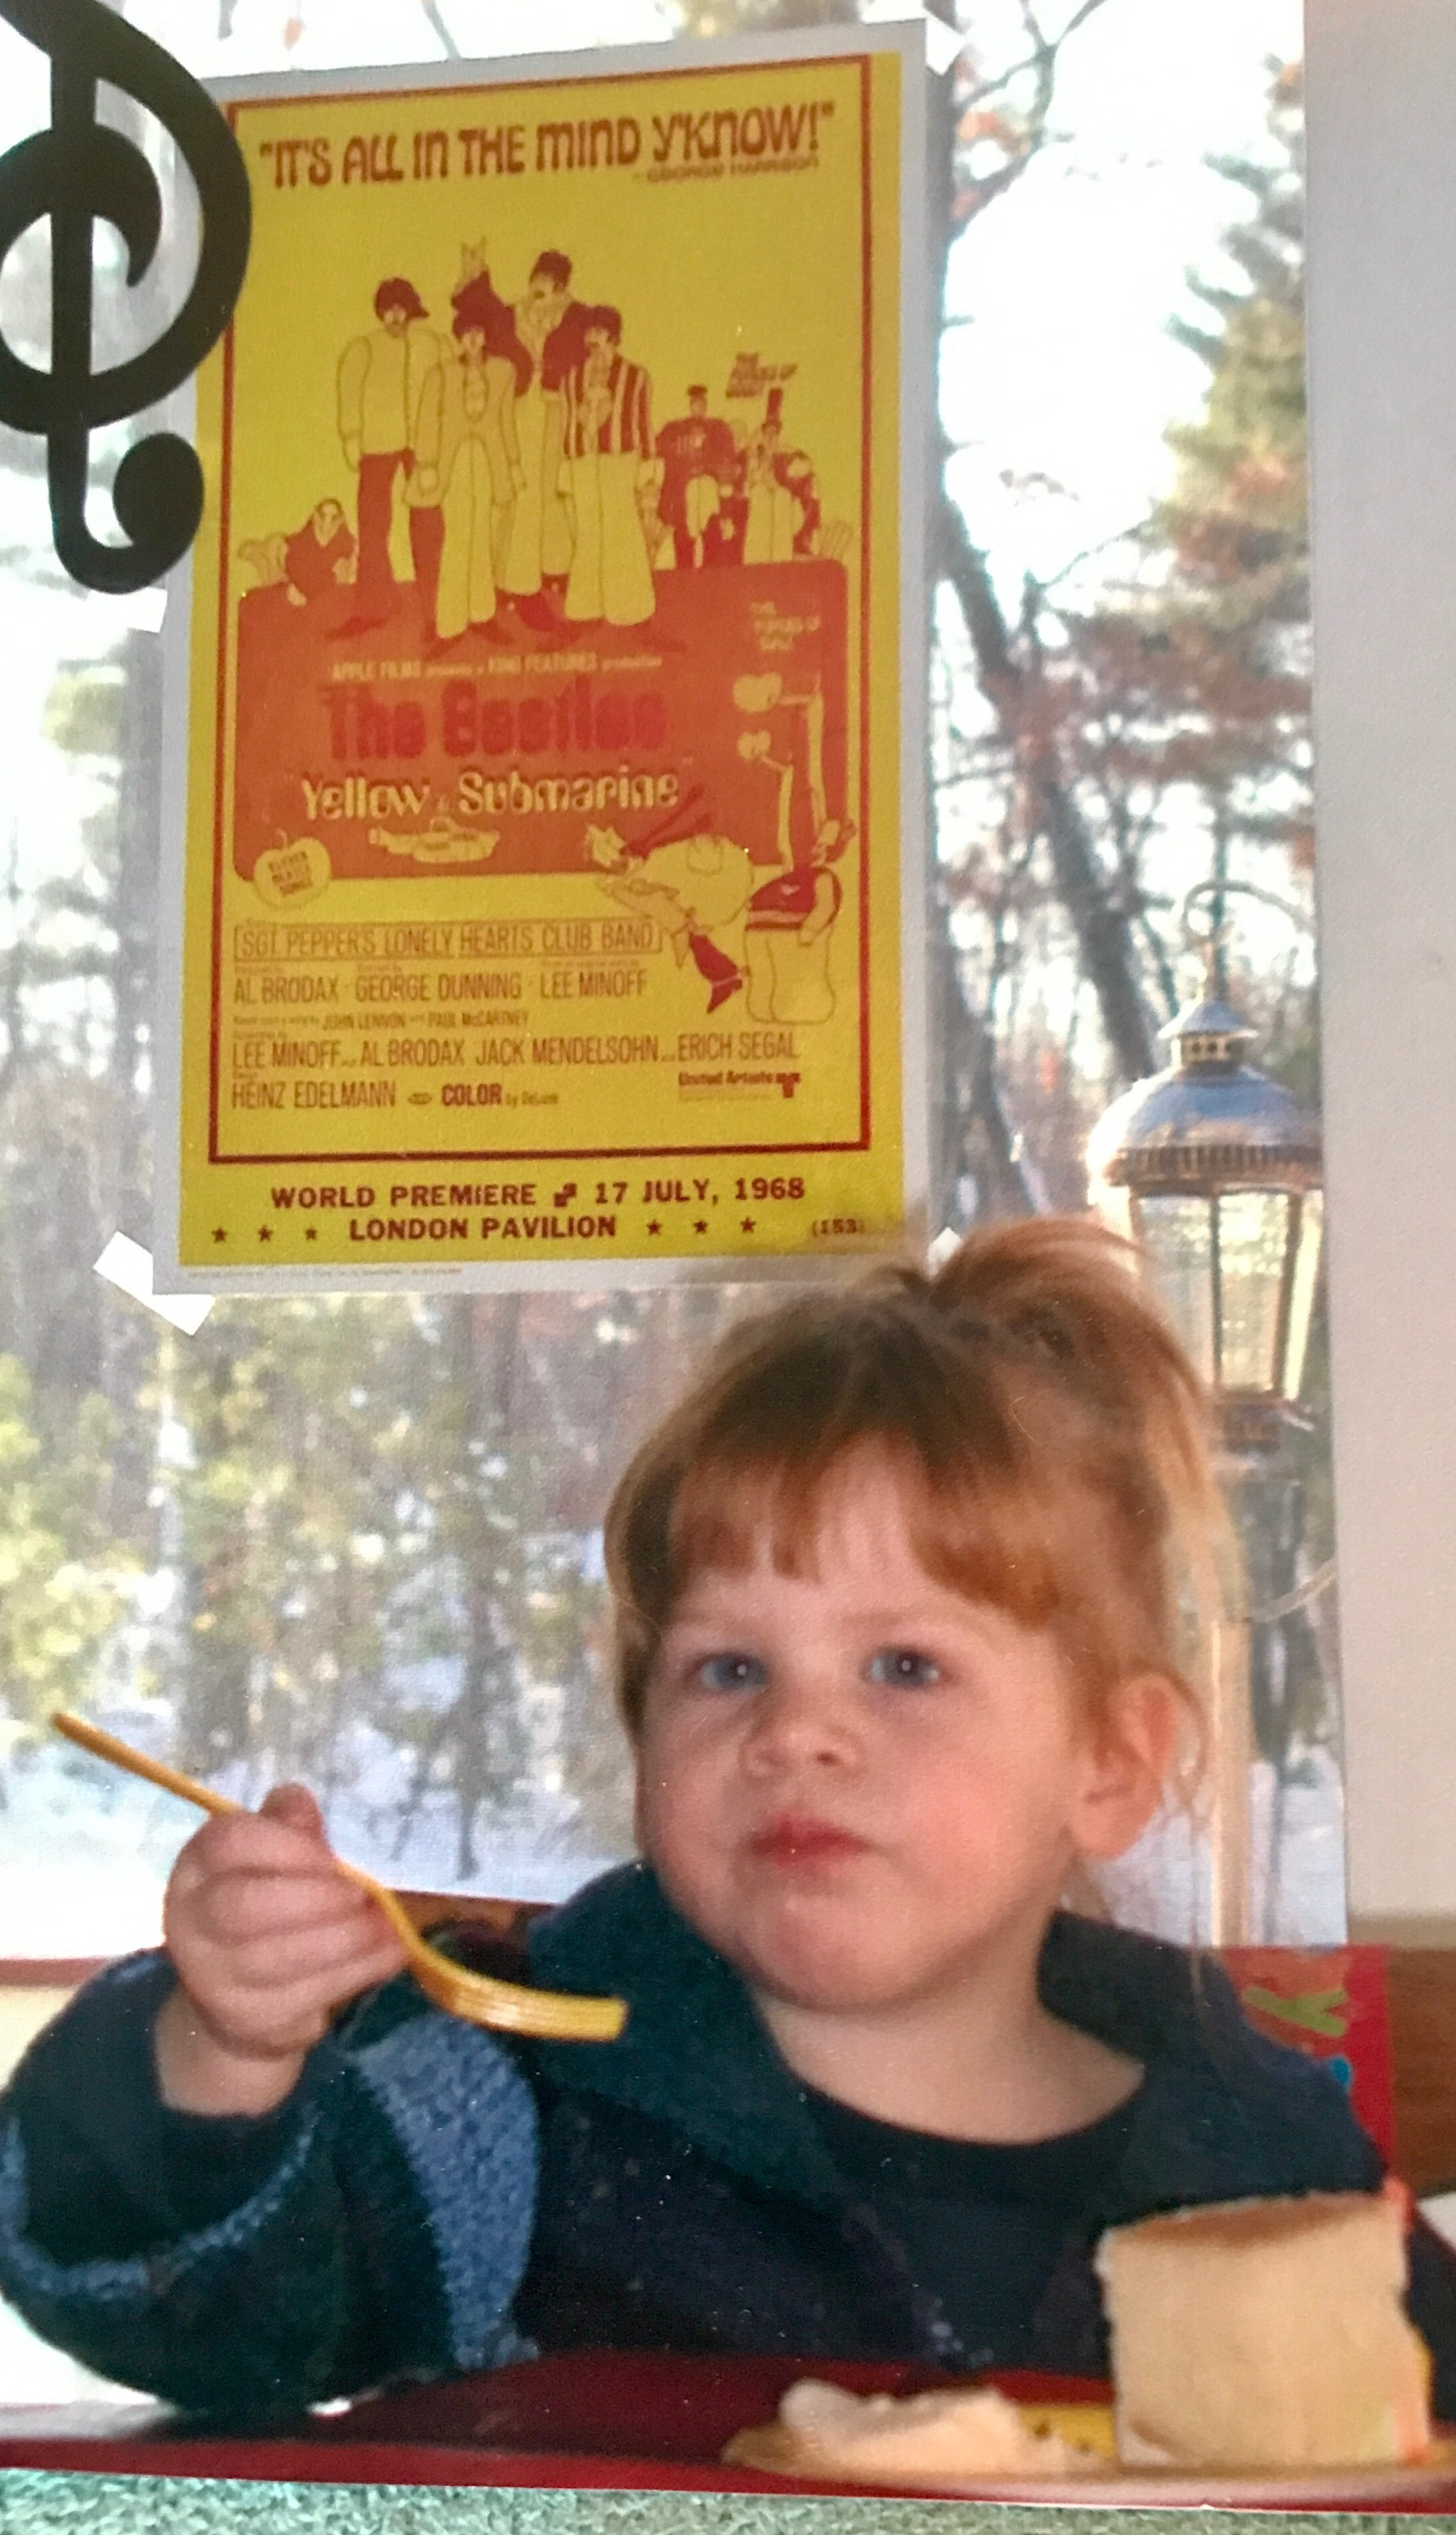 Child eating at table with Yellow Submarine Beatles poster in background